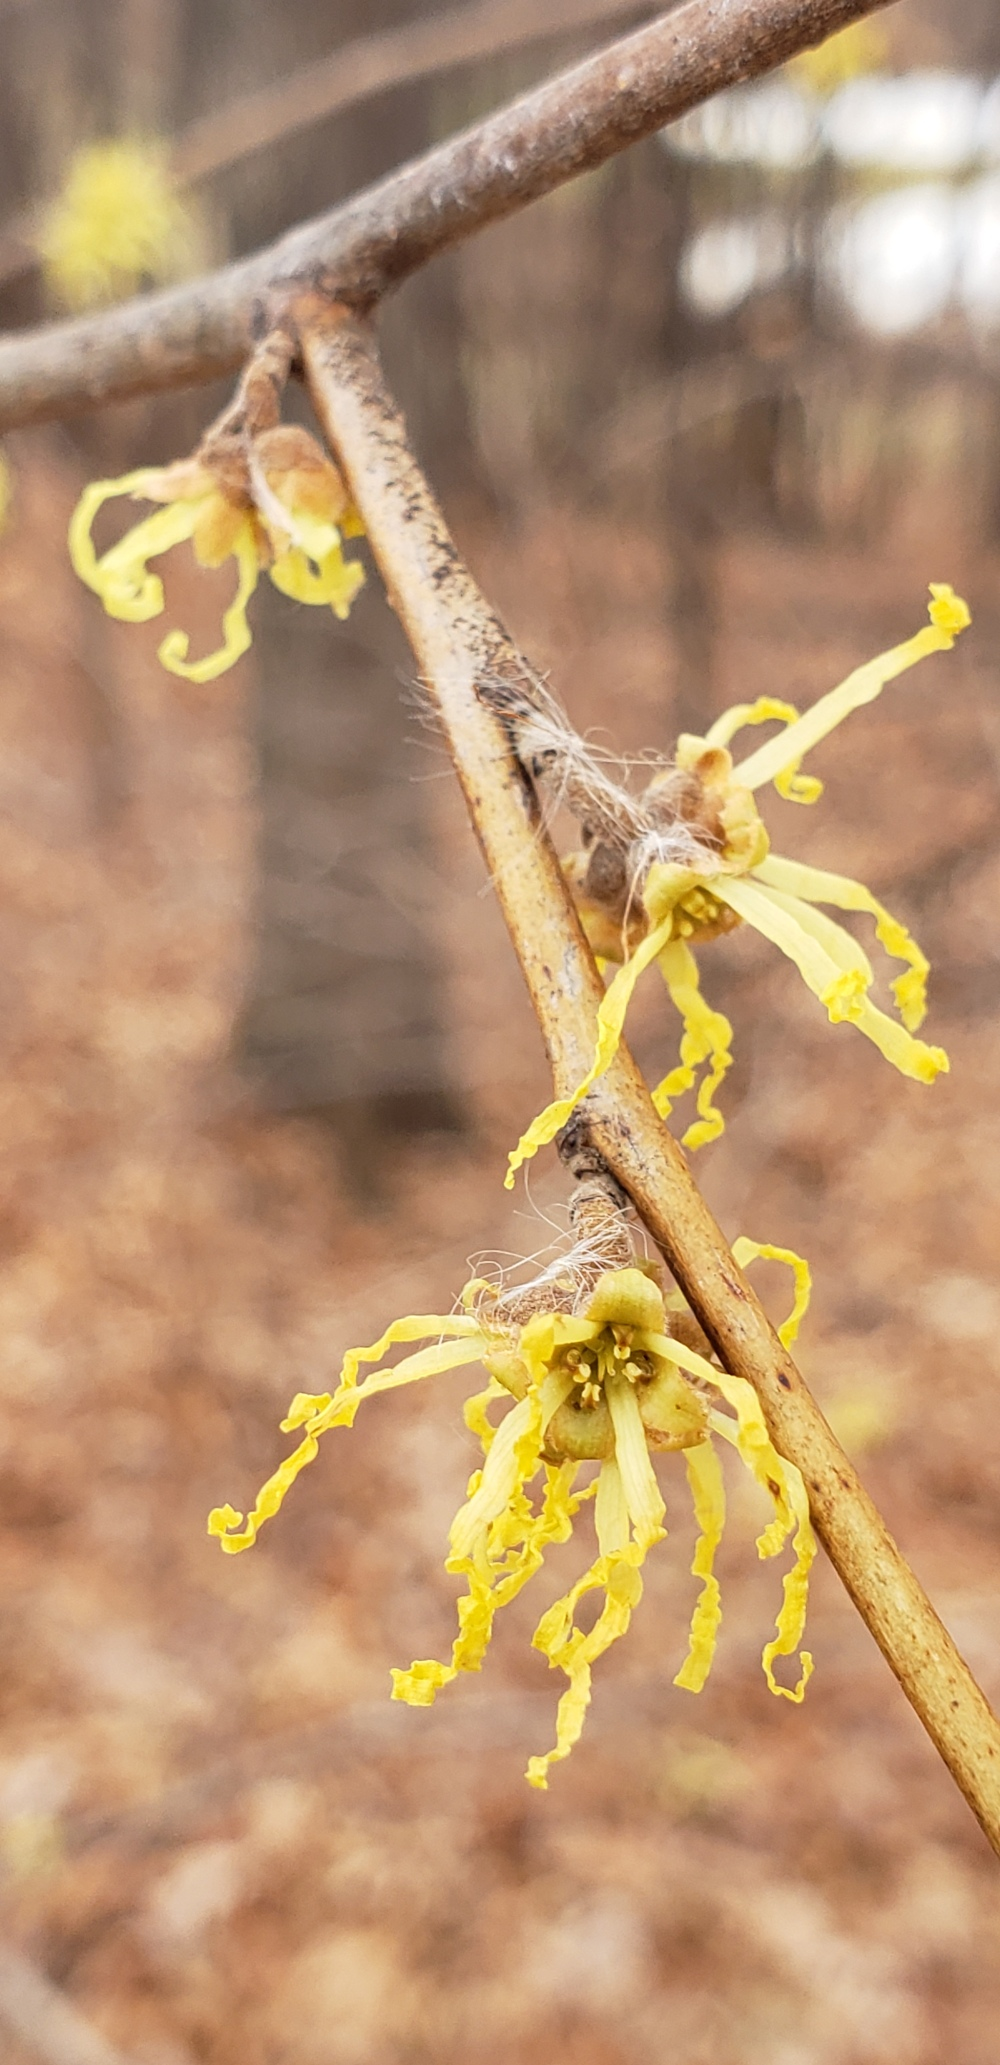 20181123_111620 Witch hazel